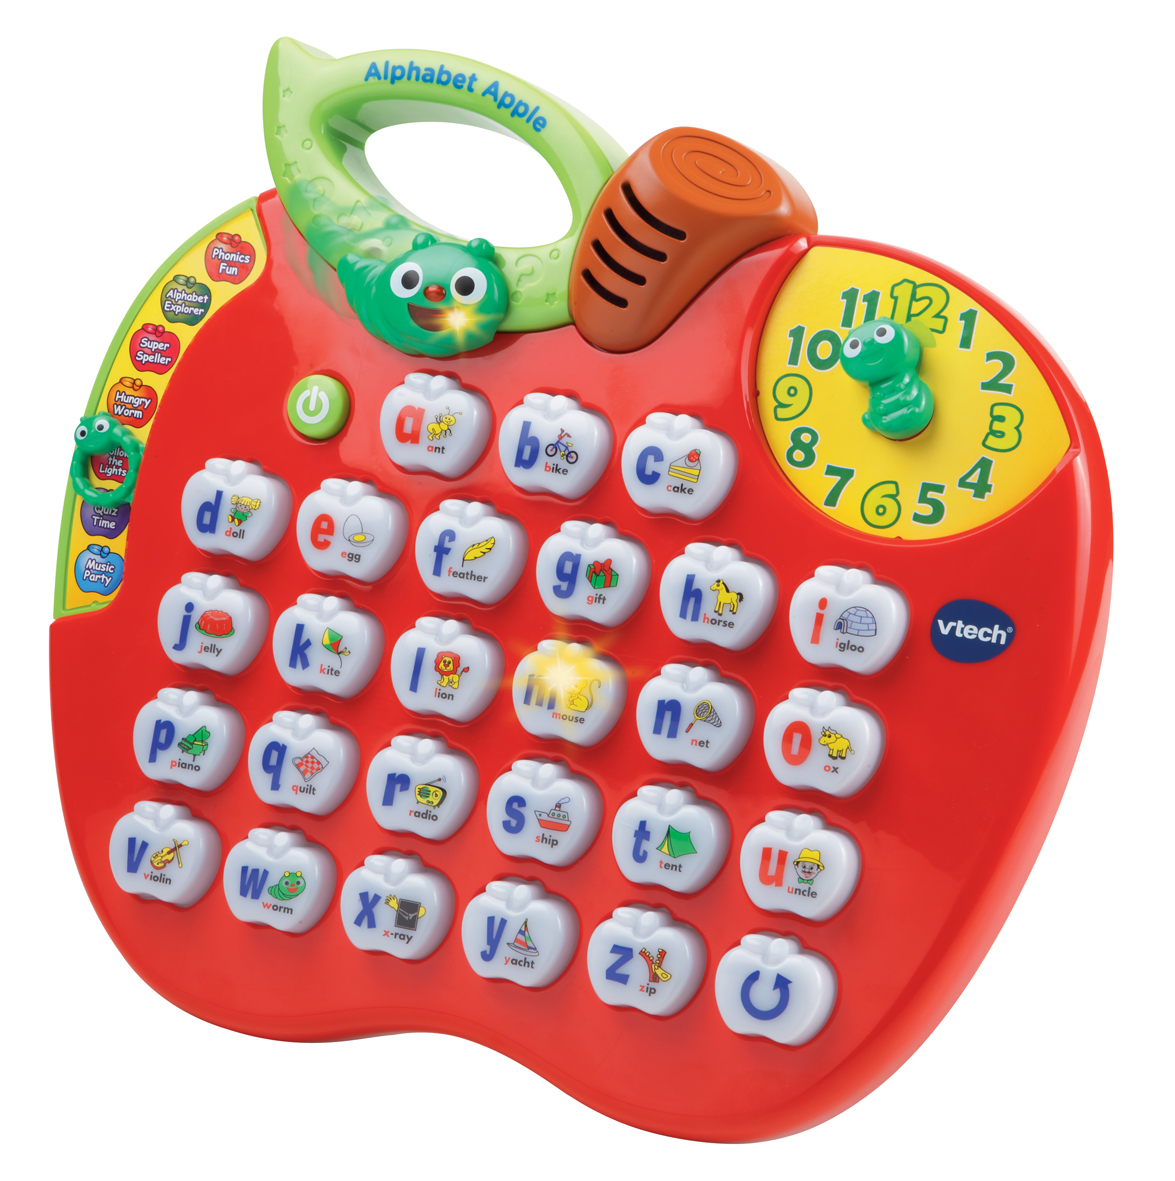 Educational Toys Age 2 : Vtech childrens educational interactive light up alphabet